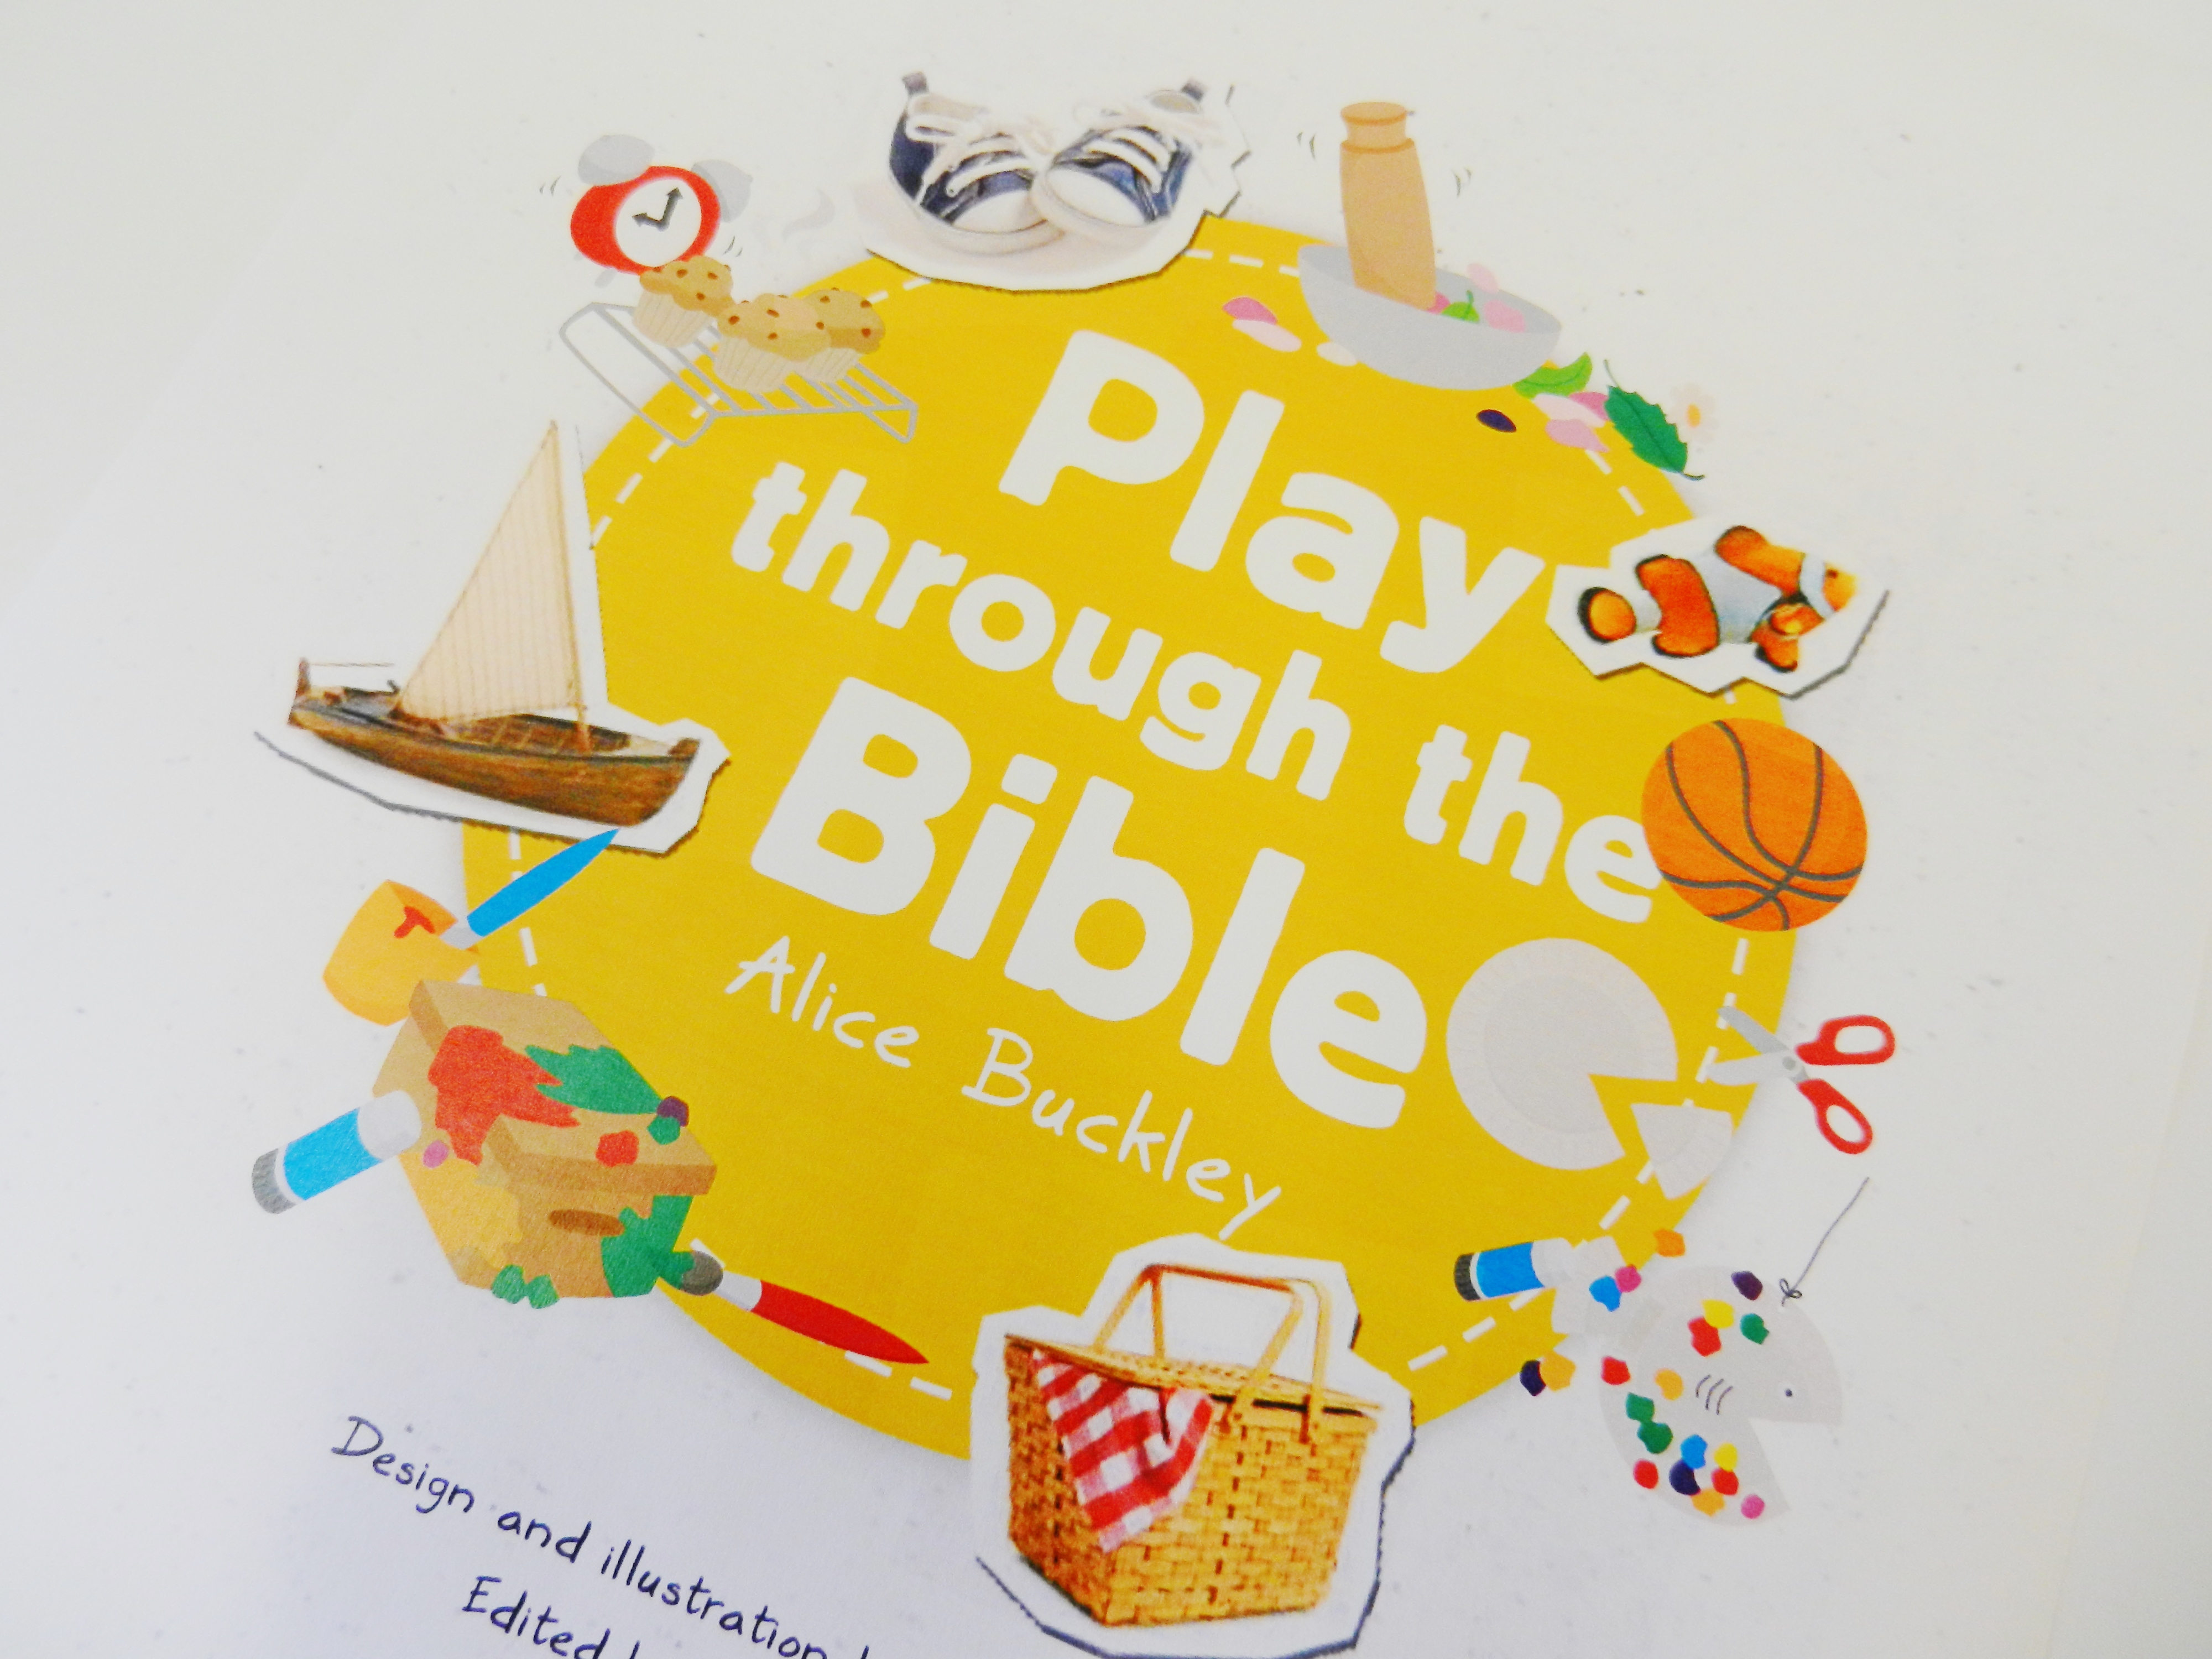 005 Alice Buckleys First Book Play Through The Bible